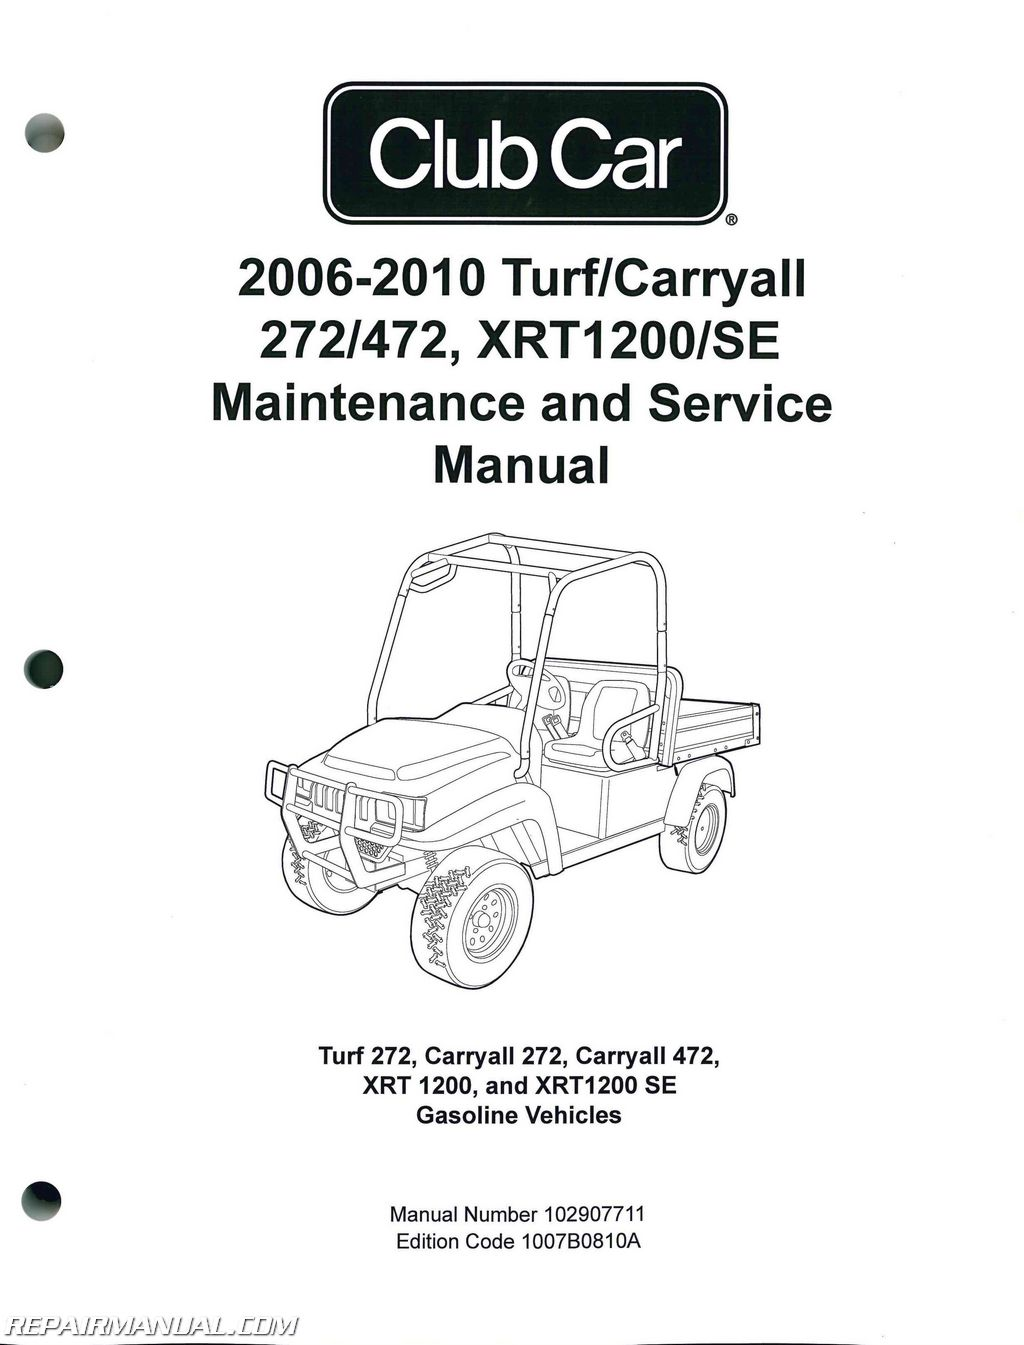 2006-2010 club car turf, carryall 272 472, xrt1200 se turf 272,